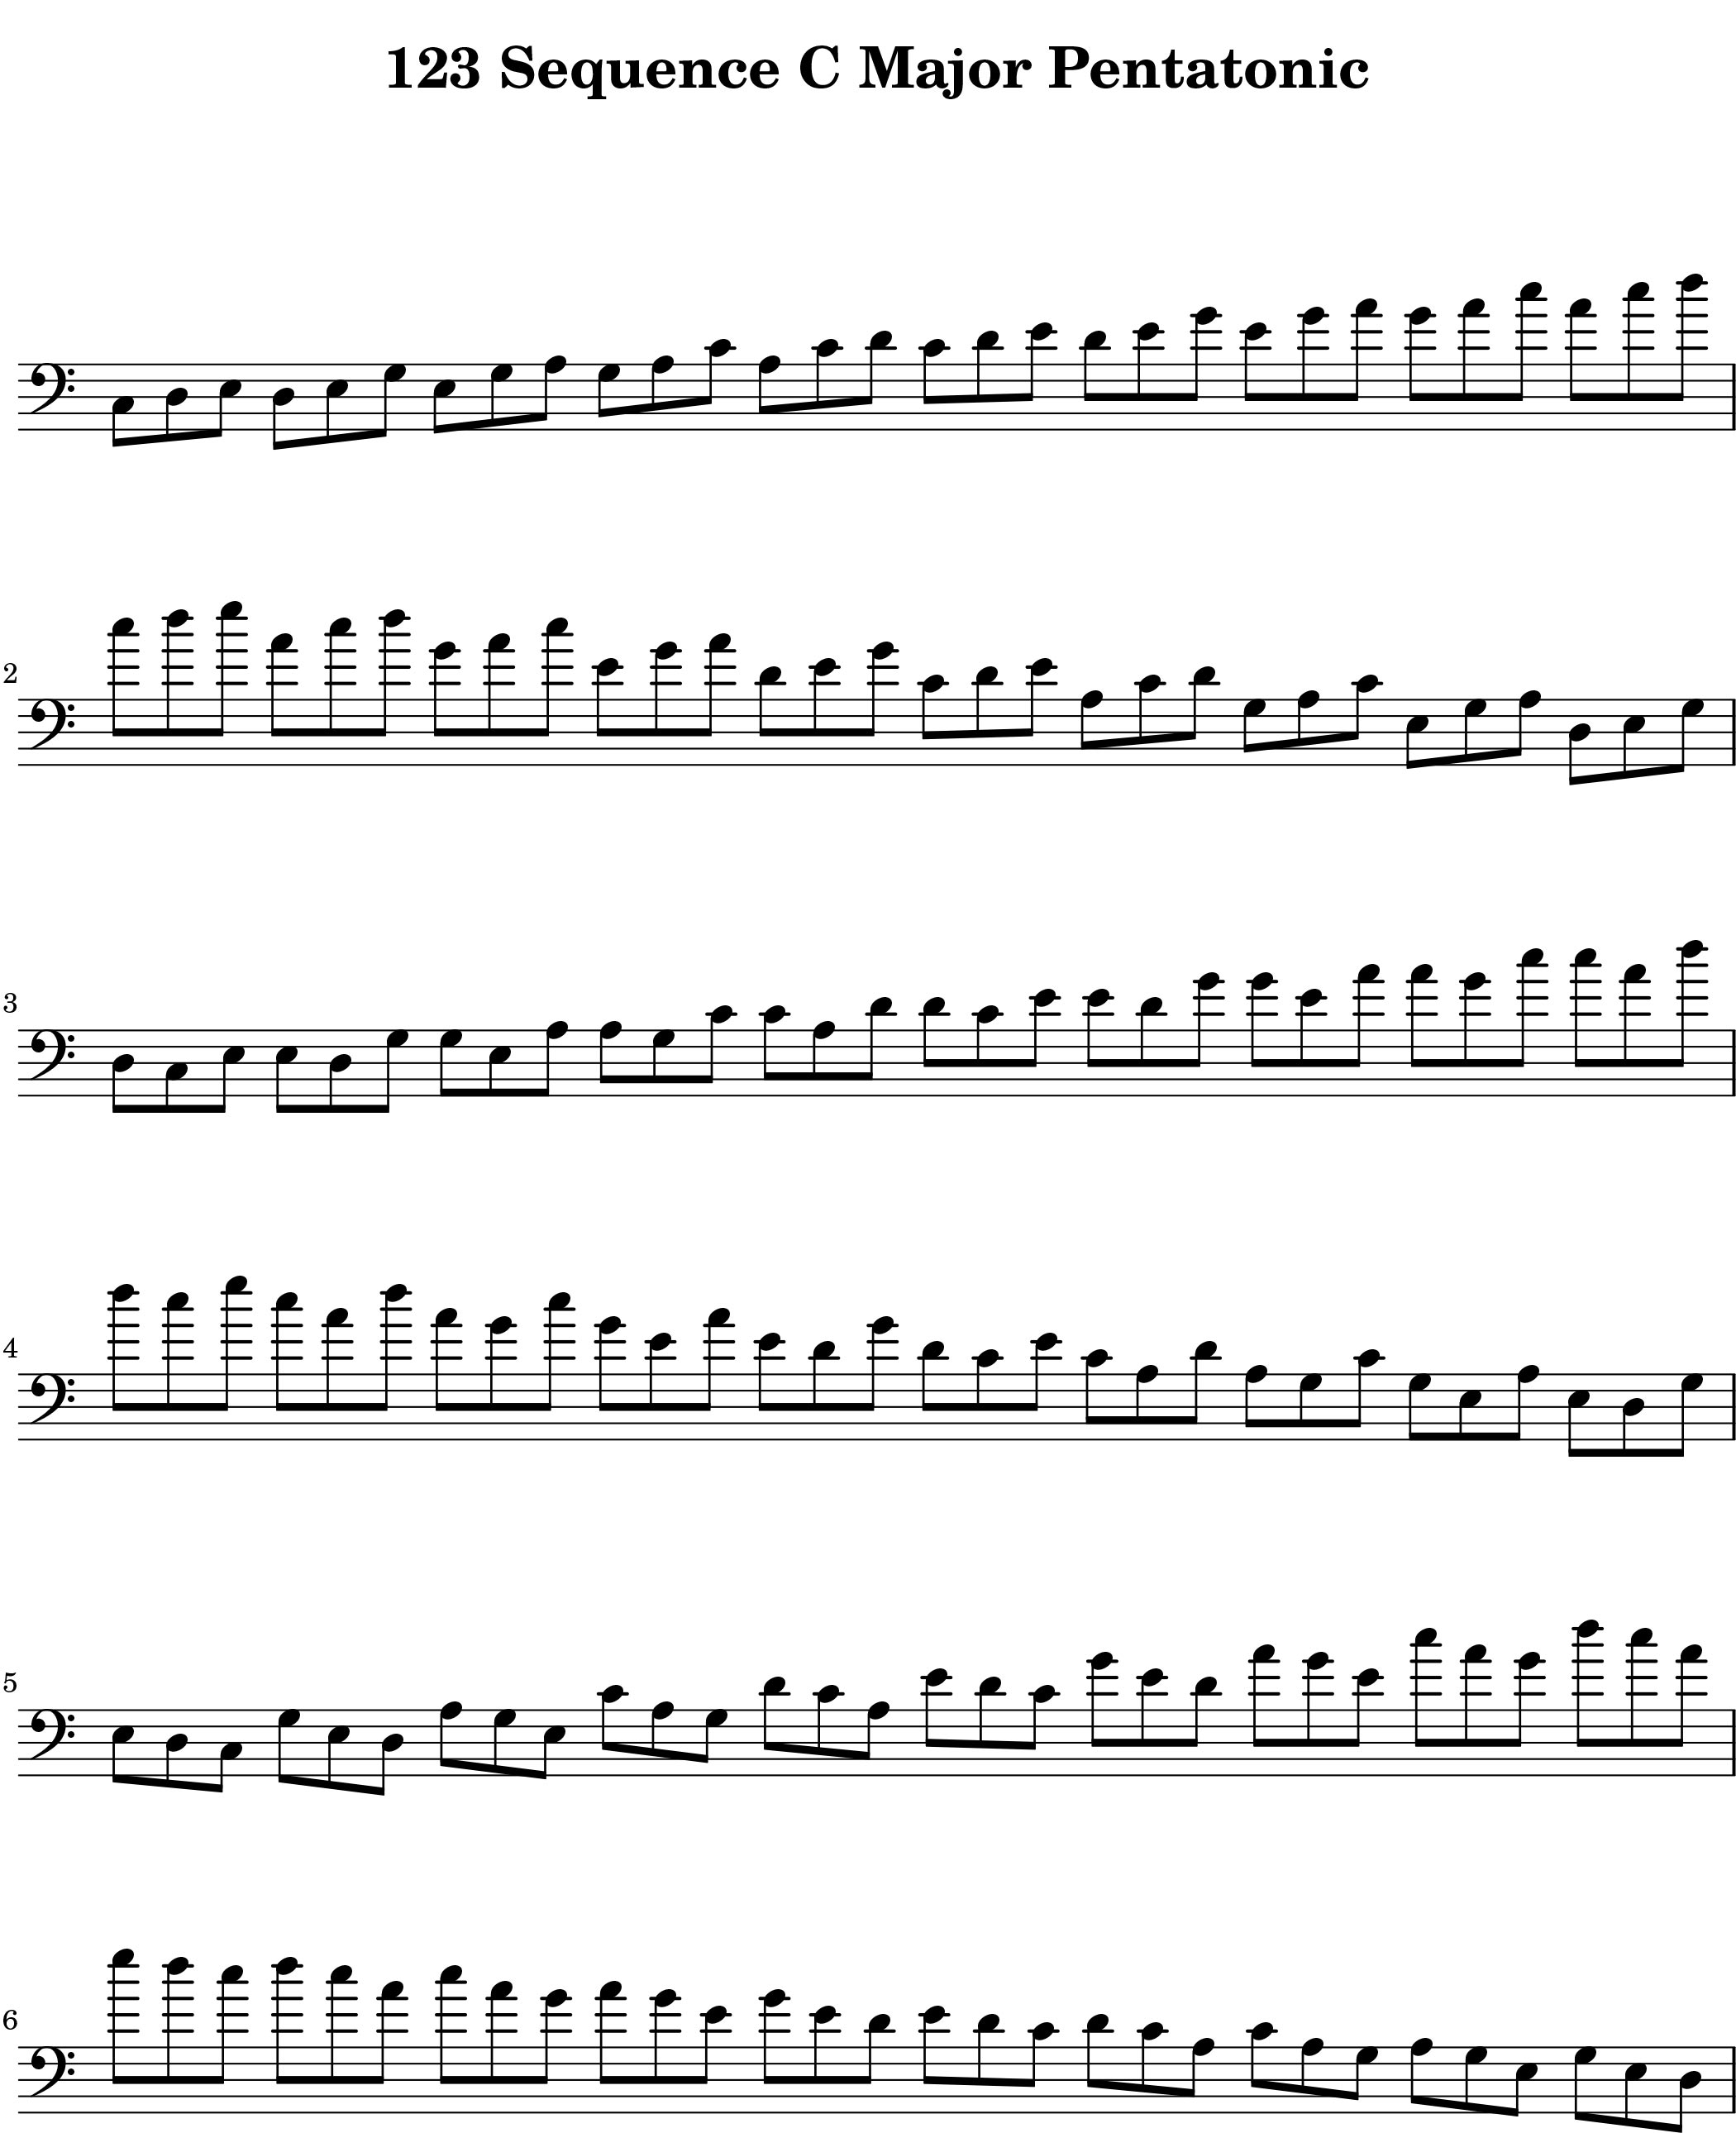 01123_Modal_Sequence_for__Pentatonic Scale Lexicon V1 Bass Clef by Bruce Arnold for Muse Eek Publishing